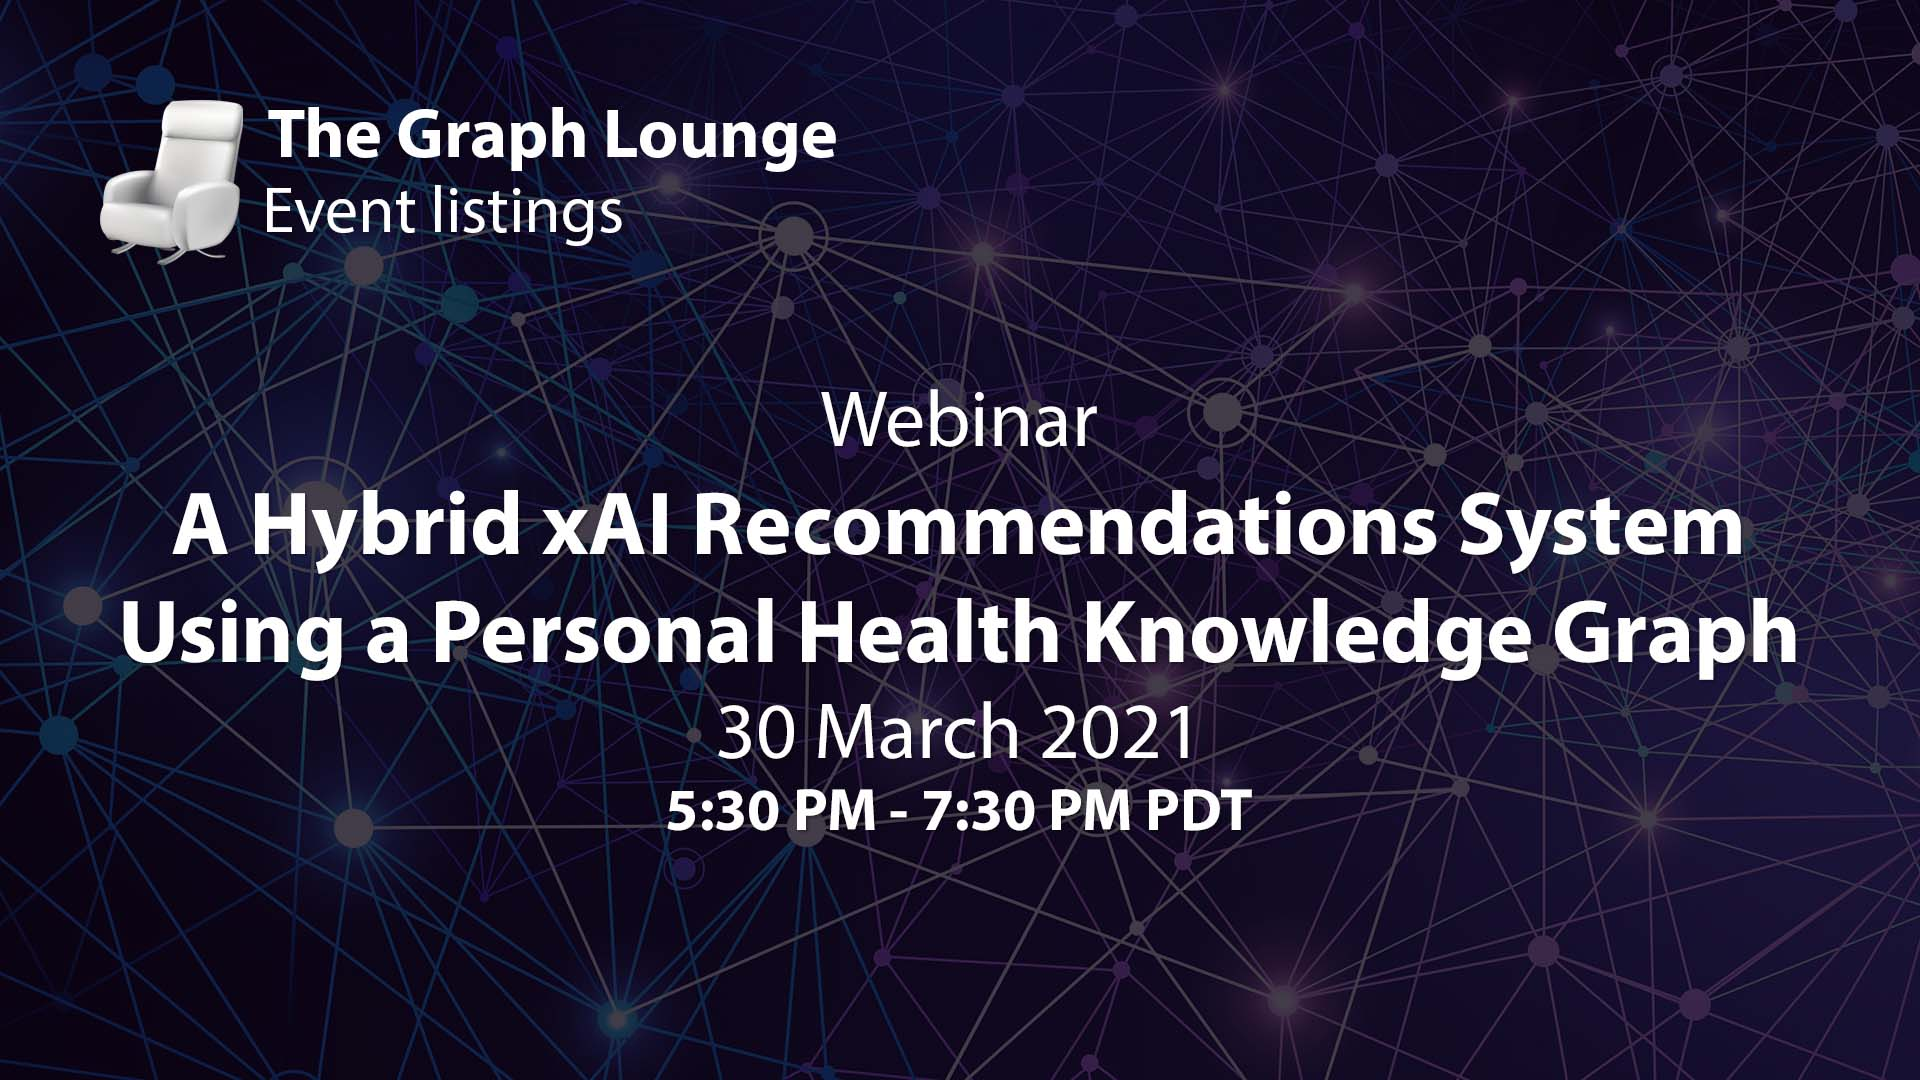 A Hybrid xAI Recommendations System Using a Personal Health Knowledge Graph